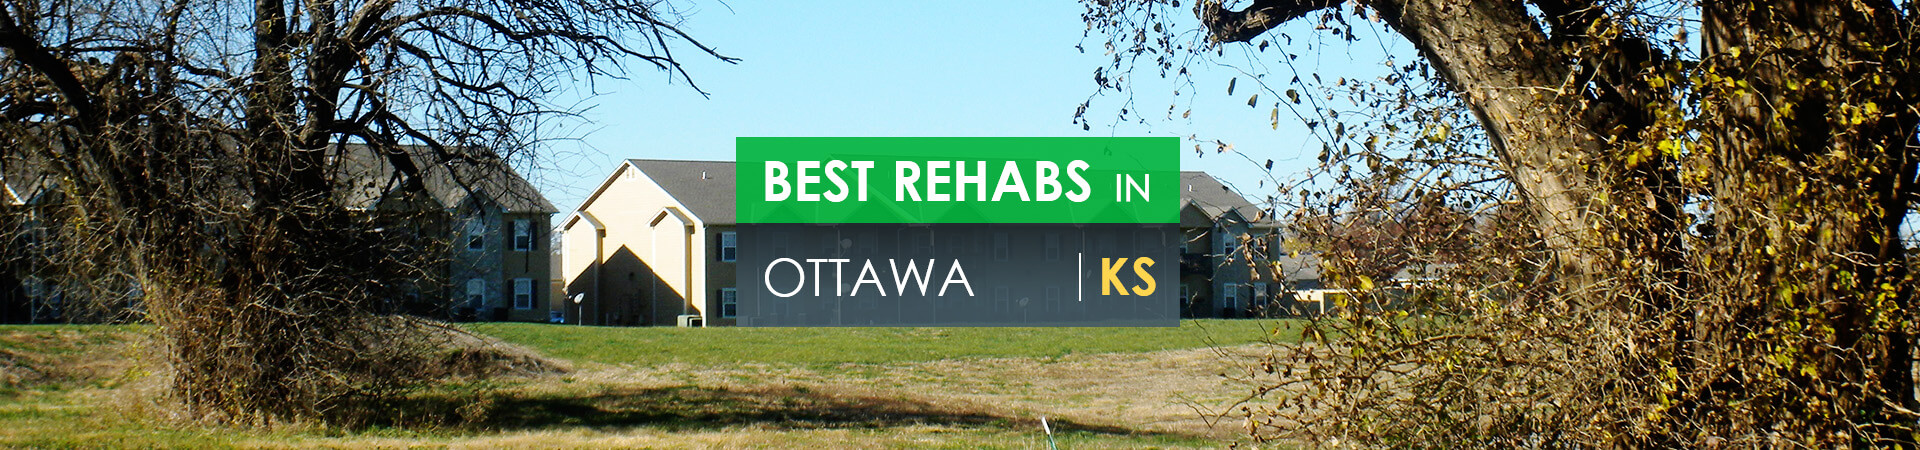 Best rehabs in Ottawa, KS